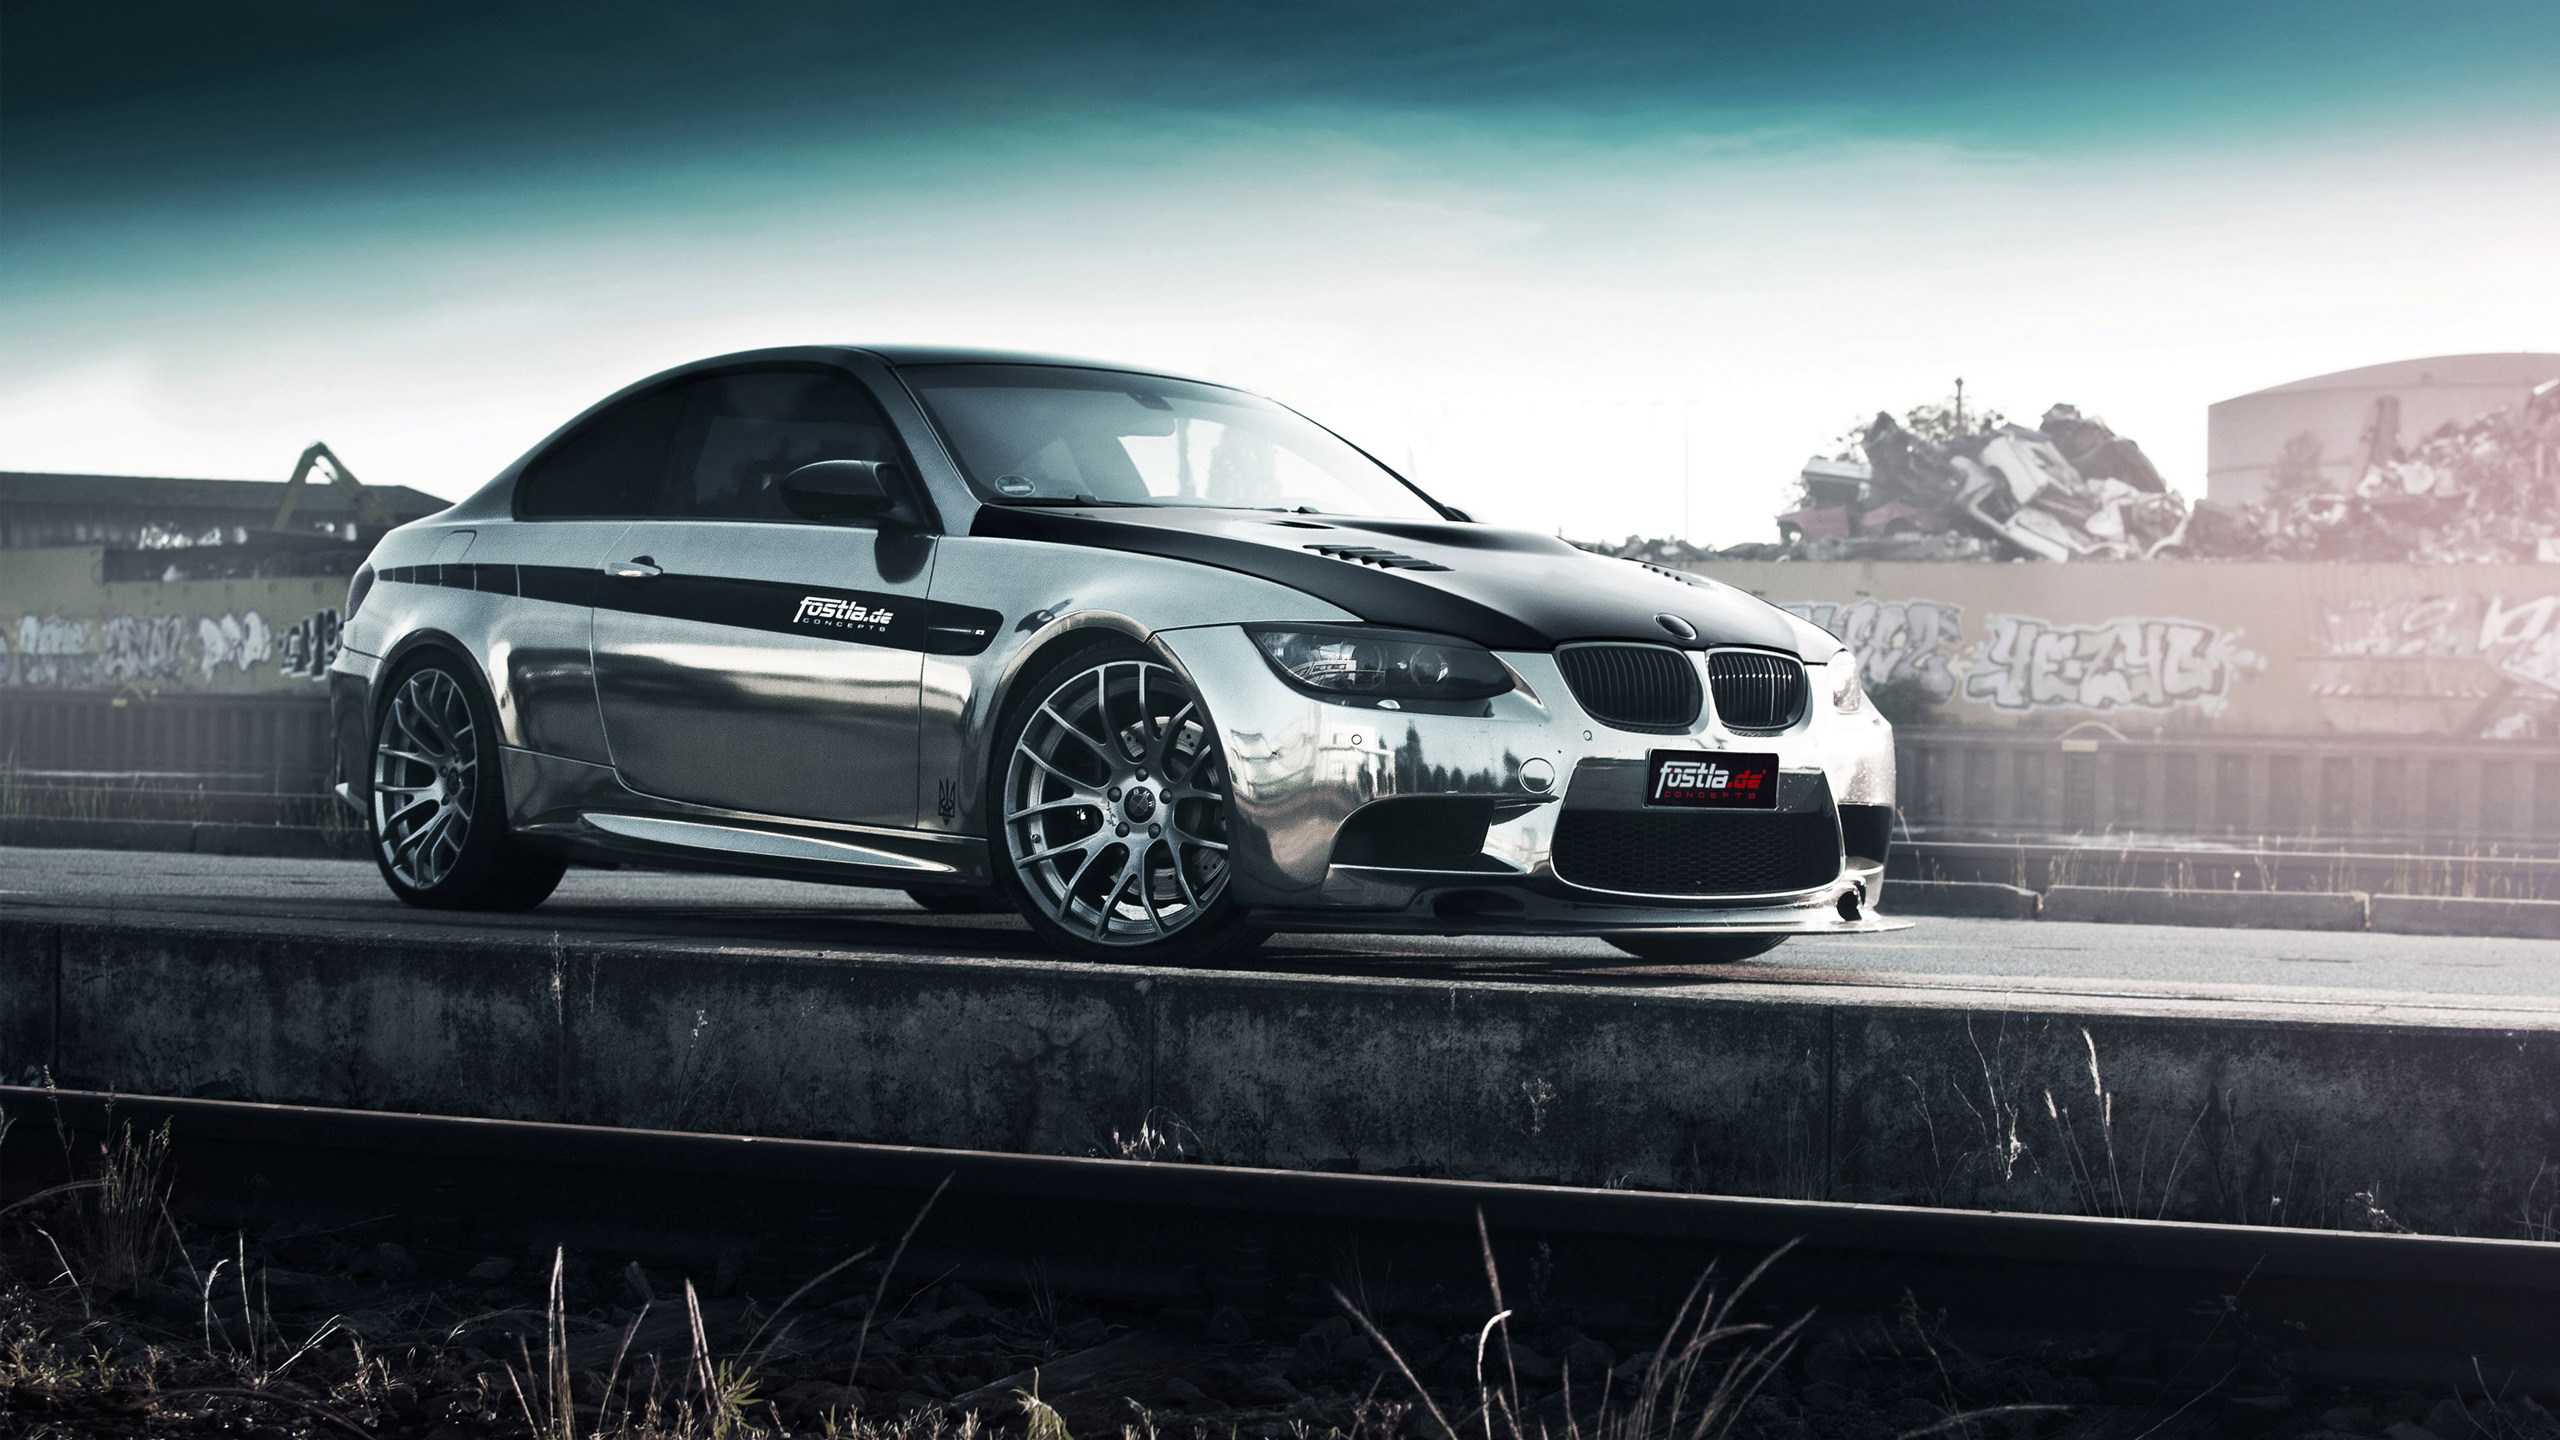 2016 fostla de bmw m3 coupe 2 wallpaper | hd car wallpapers | id #6550